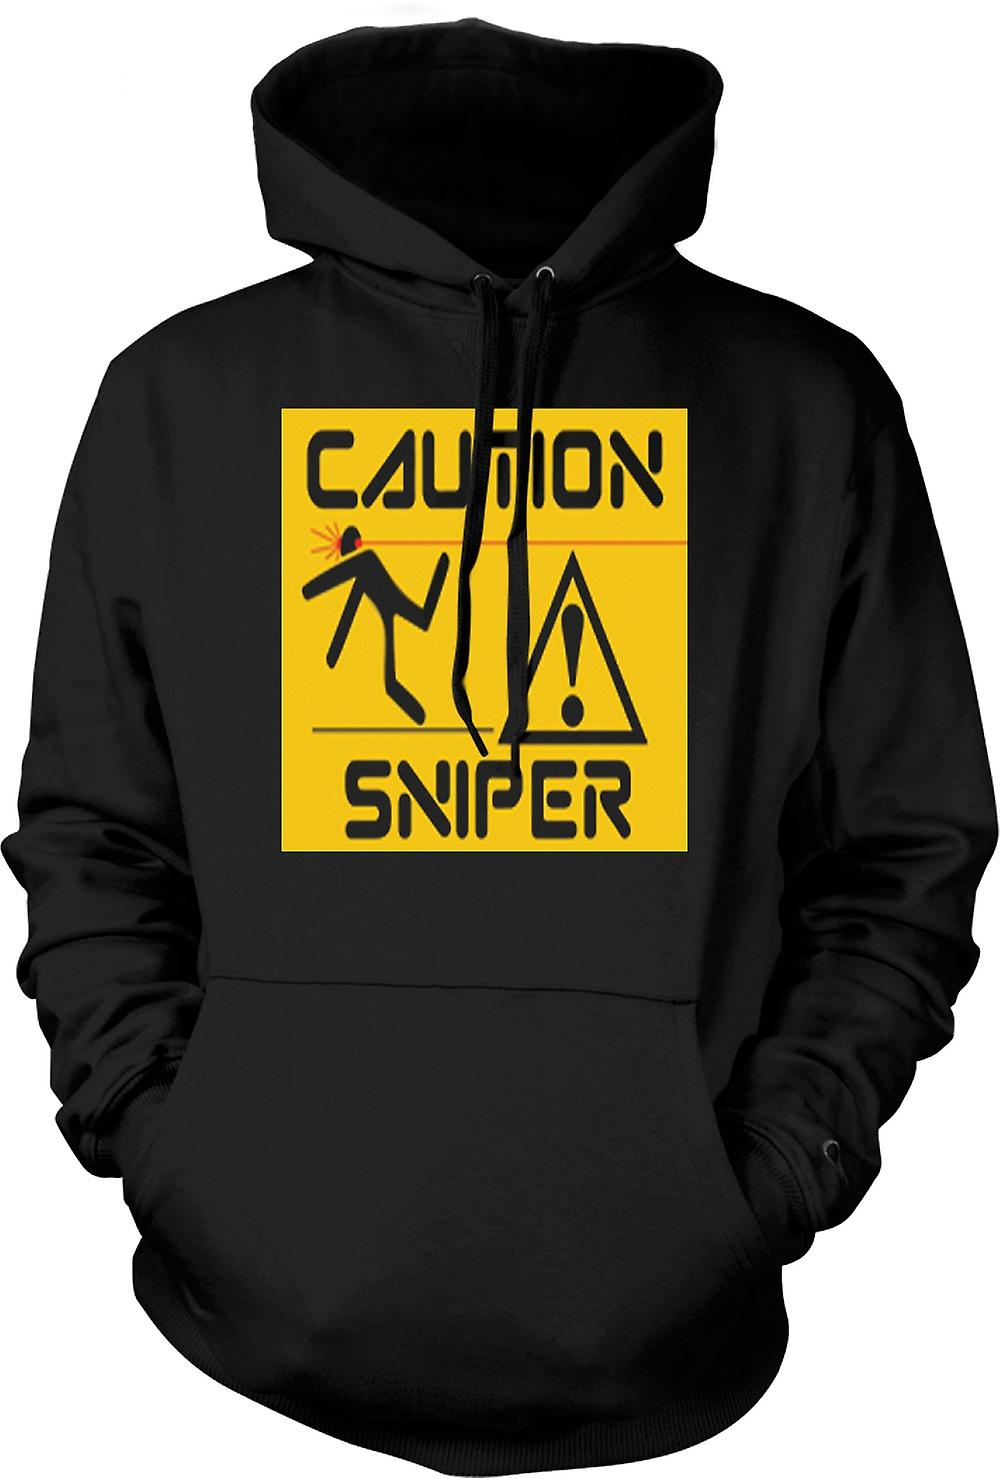 Kids Hoodie - Caution - Sniper Warning Sign